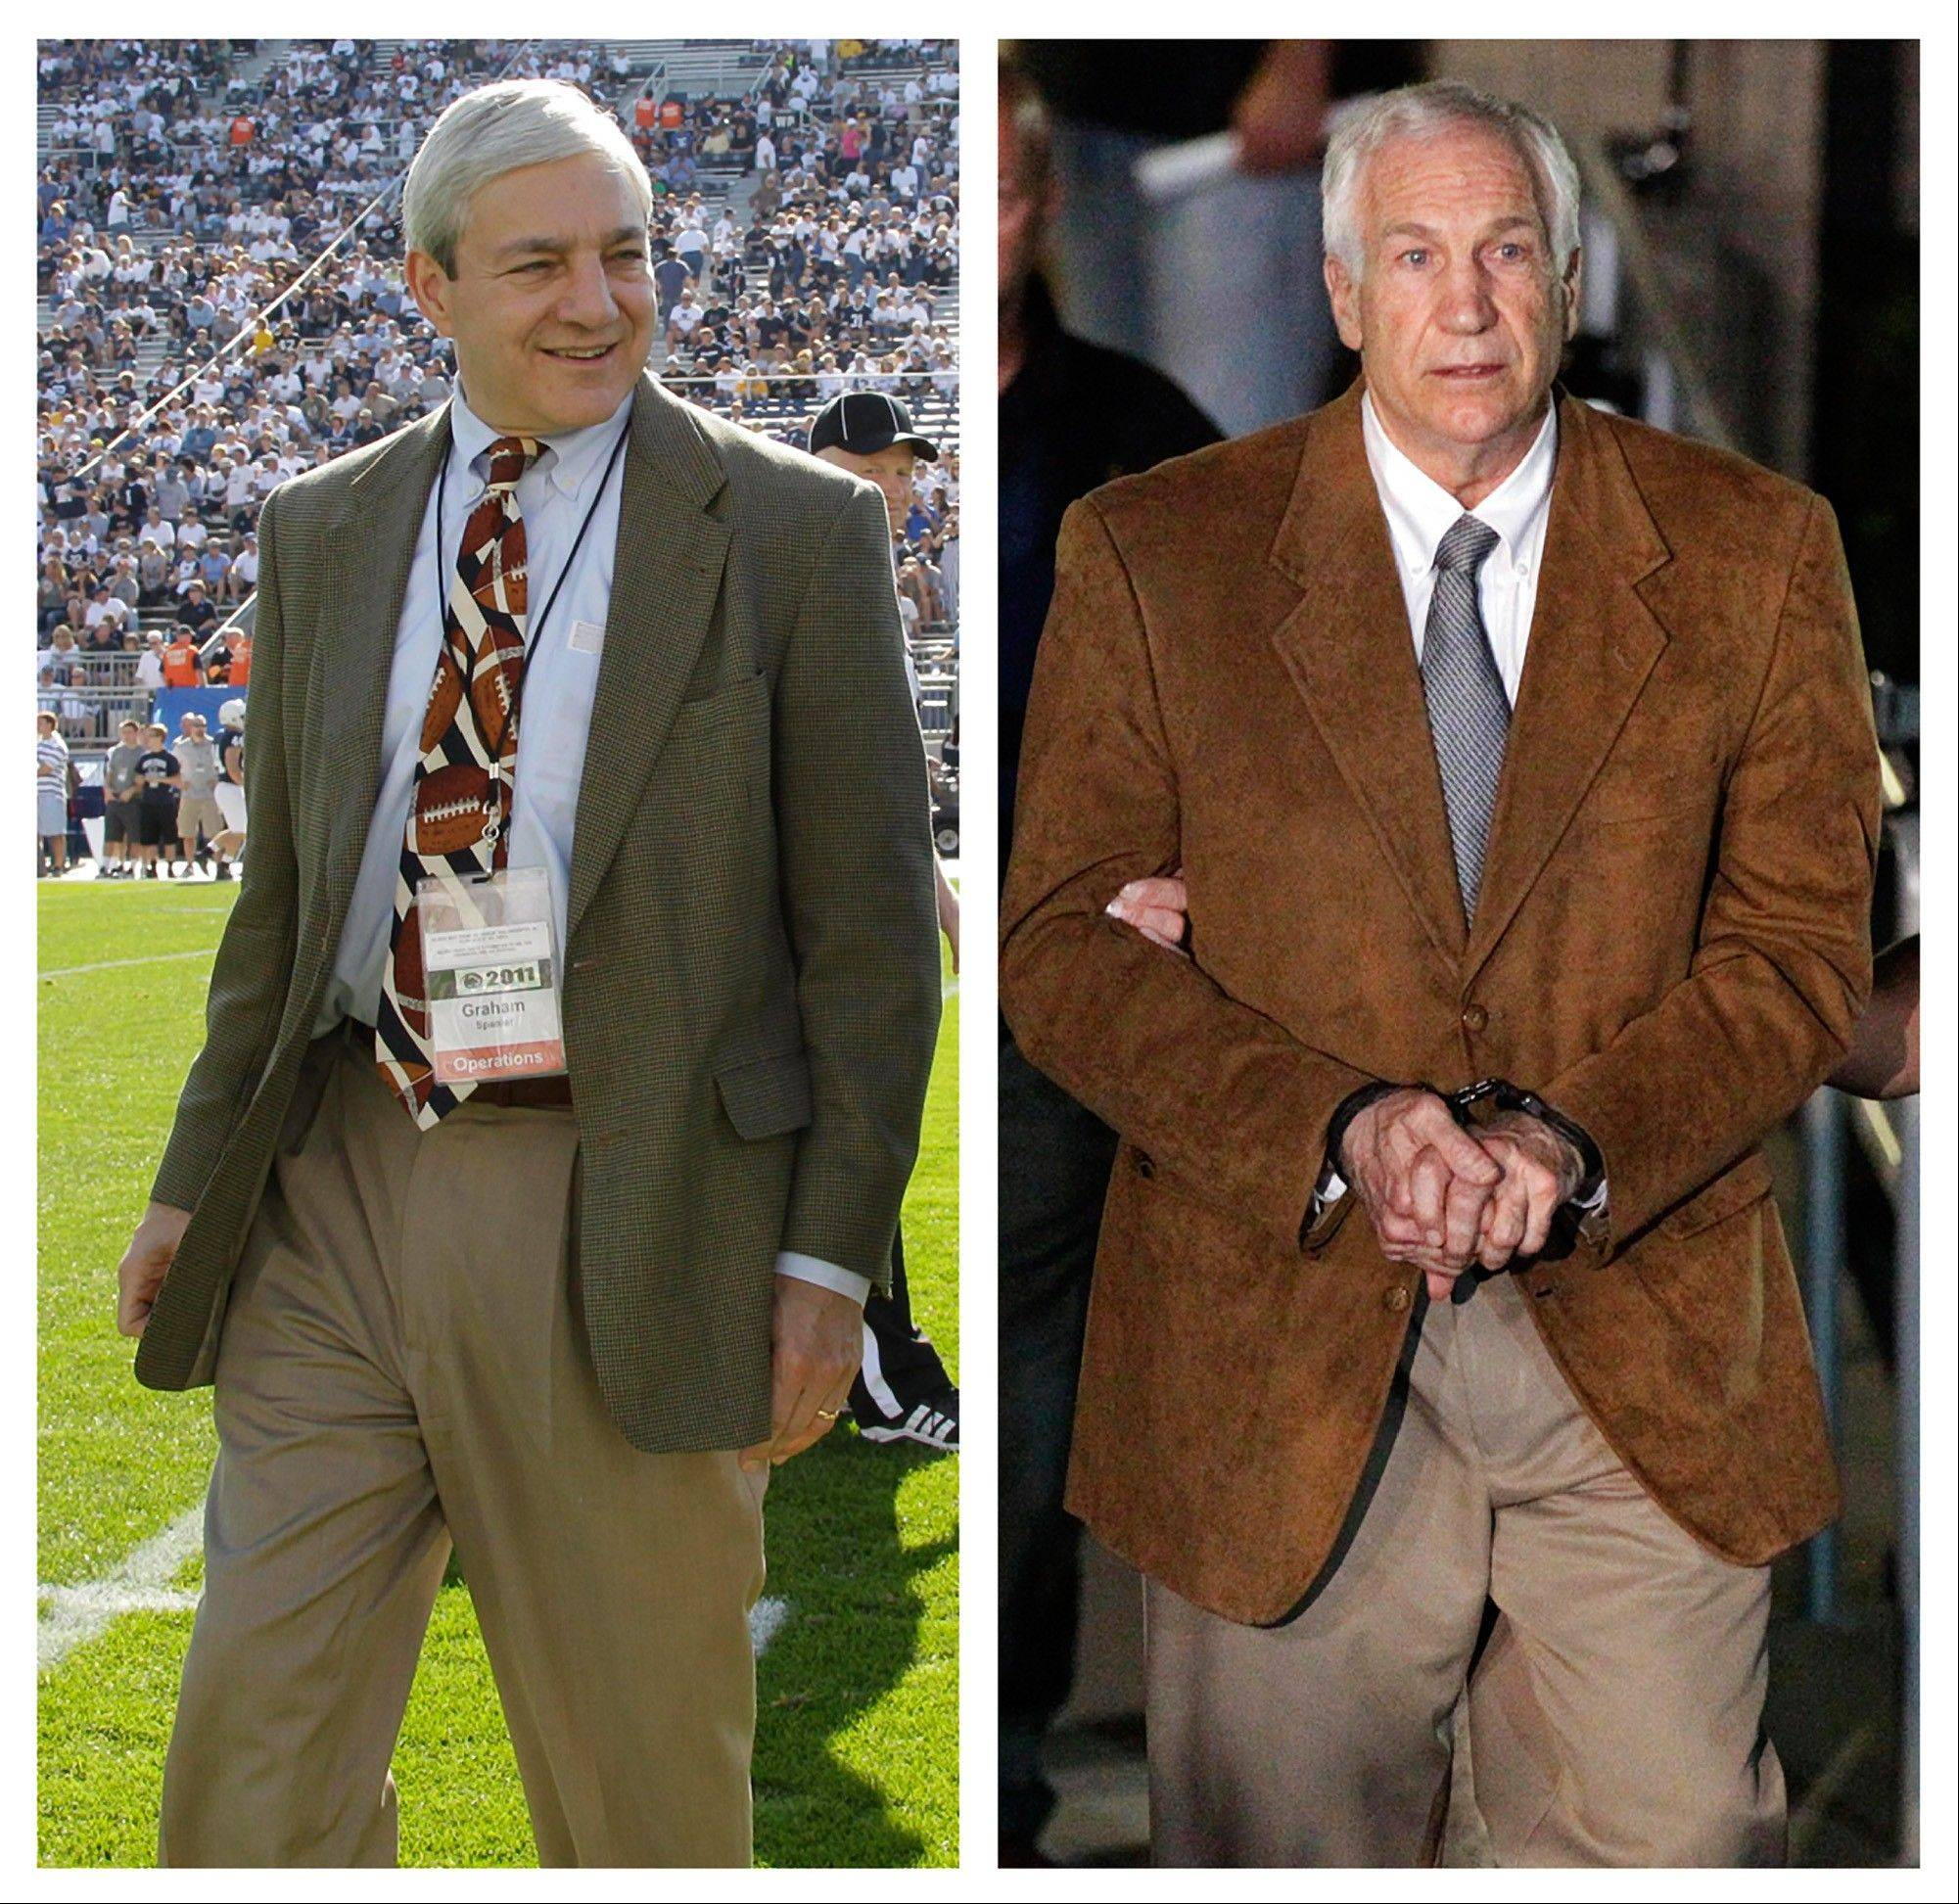 In this photo combo, at left, in an Oct. 8, 2011 file photo, Penn State president Graham Spanier walks on the field before an NCAA college football game in State College, Pa. At right, former Penn State University assistant football coach Jerry Sandusky leaves the Centre County Courthouse in custody after being found guilty of multiple charges of child sexual abuse in Bellefonte, Pa., June 22. National campus safety experts say such problems reporting crimes on campus spread far beyond Penn State, even as the U.S. Department of Education has stepped up enforcement in recent years and teamed up with the FBI on some inquiries.